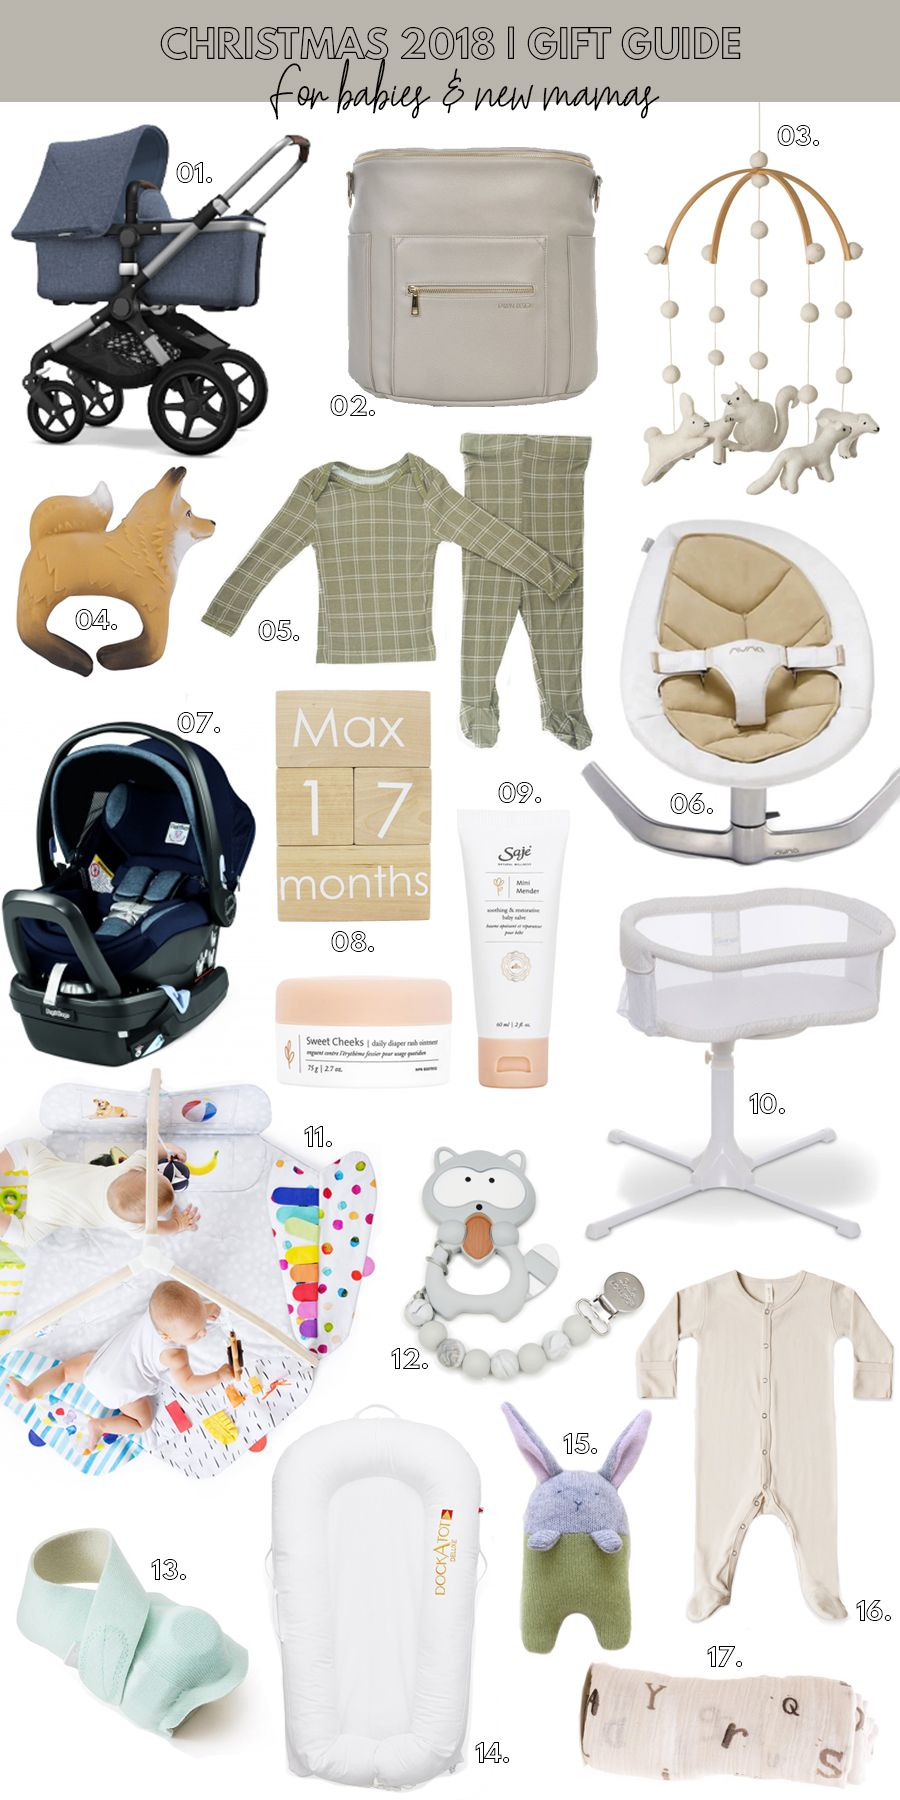 Christmas 2018 gift guide gifts for babies new mamas